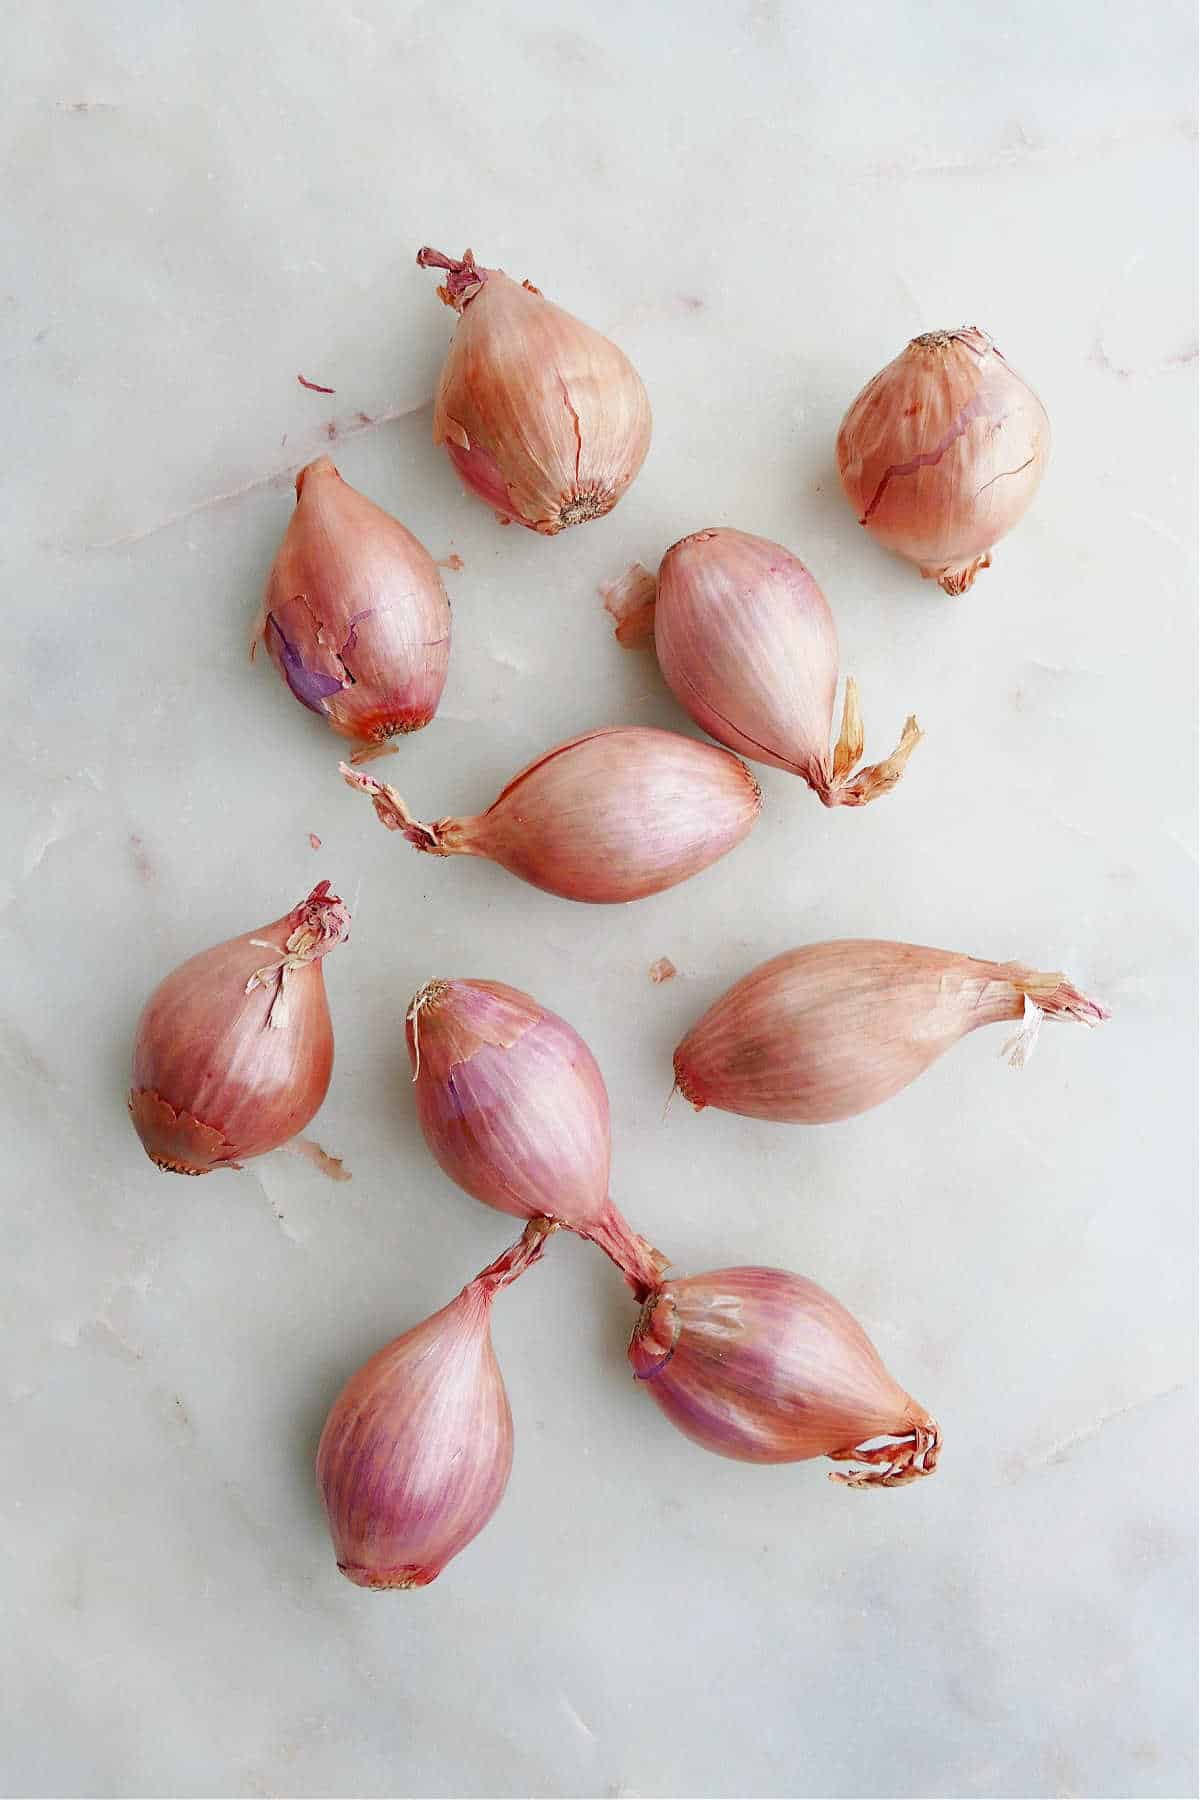 ten shallots spread out next to each other on a white marble counter